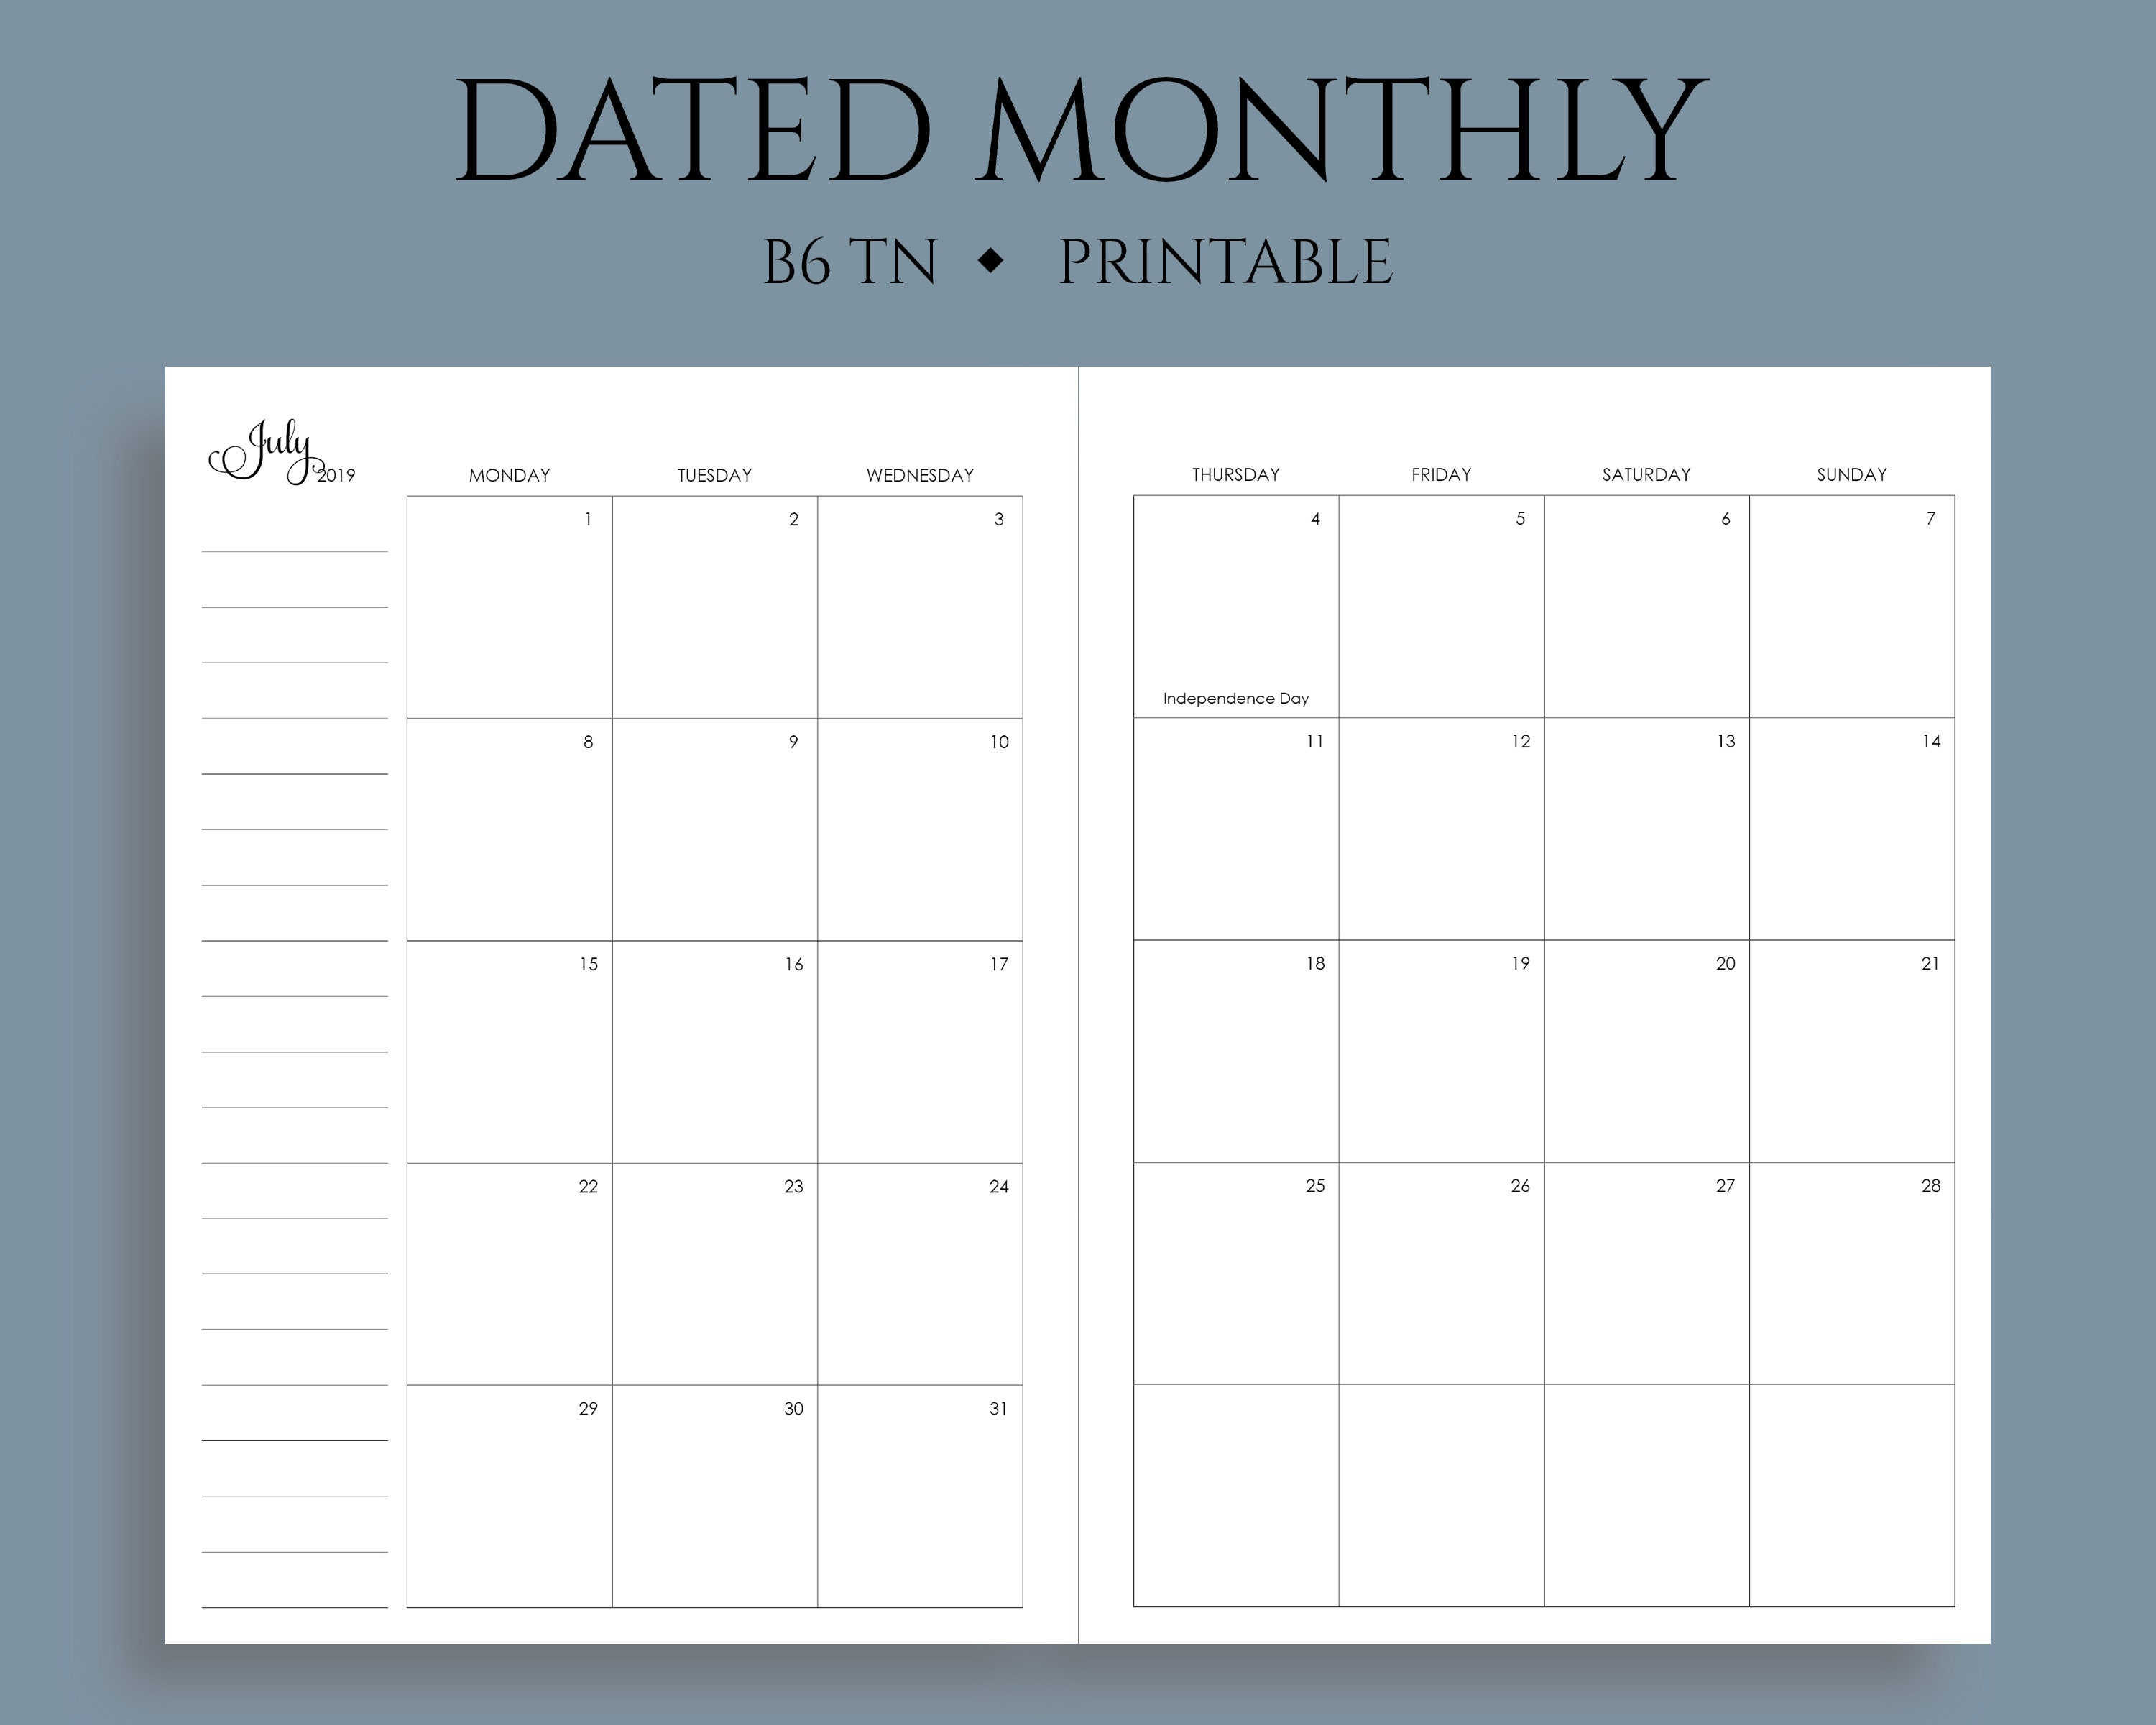 Ud Calendar 2020 July 2019 Dec 2020 Dated Monthly Calendar Printable Planner | Etsy